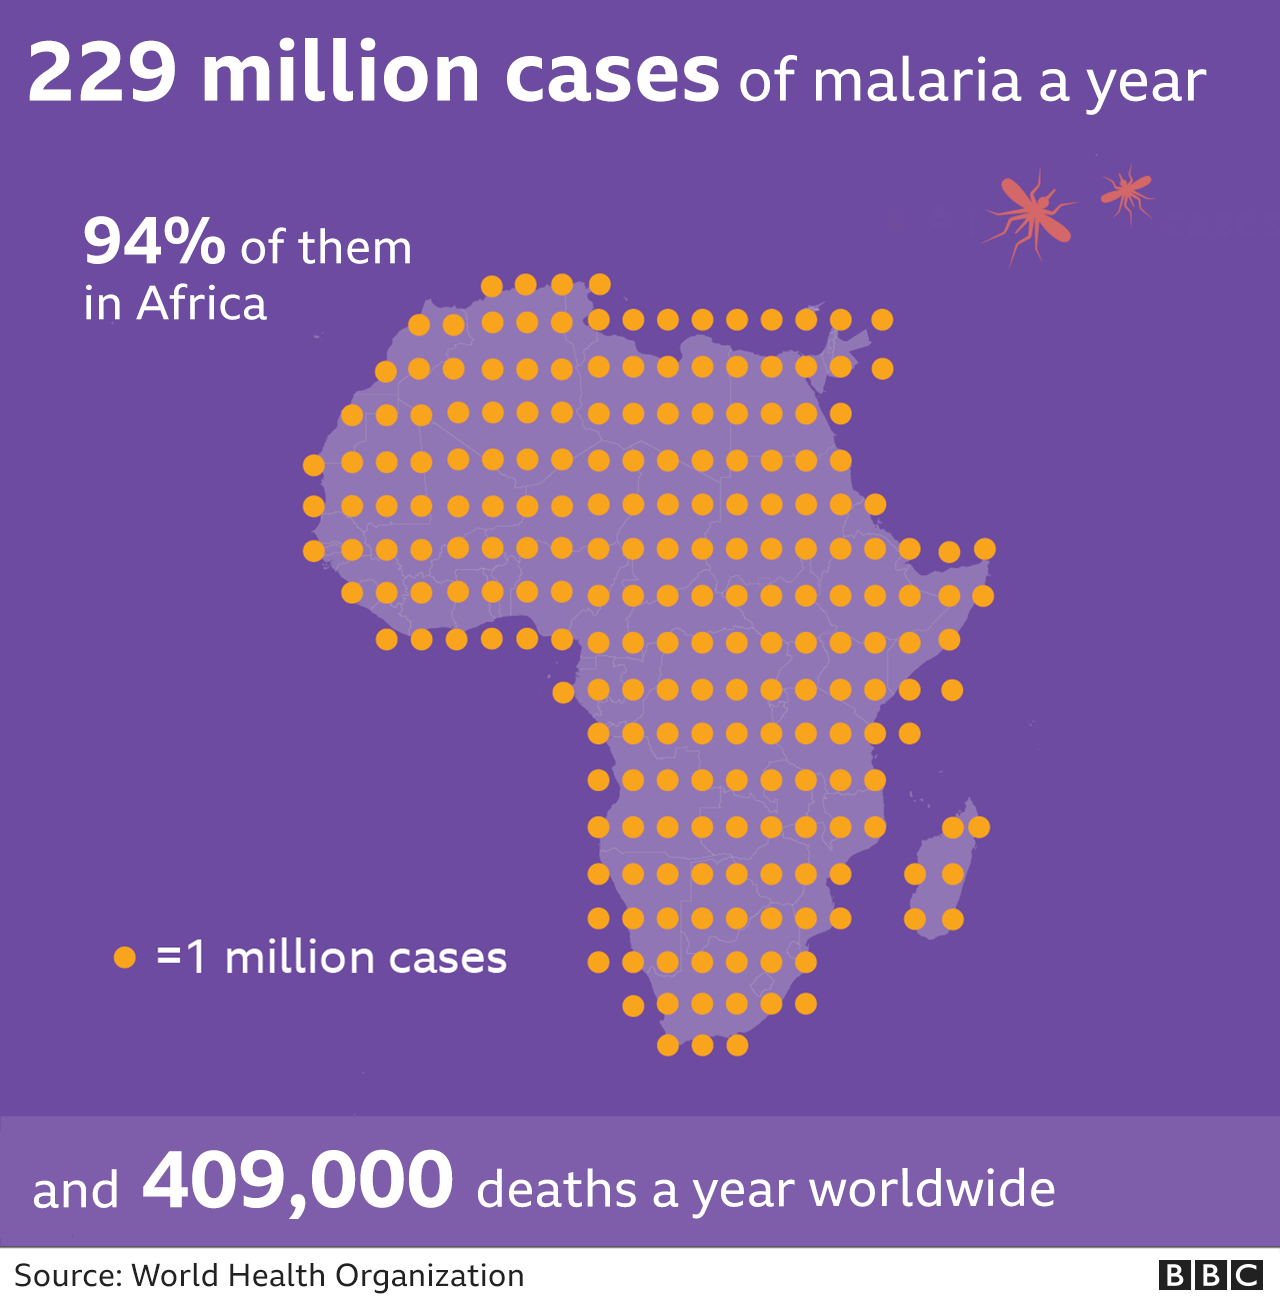 There are around 400,000 deaths from malaria every year